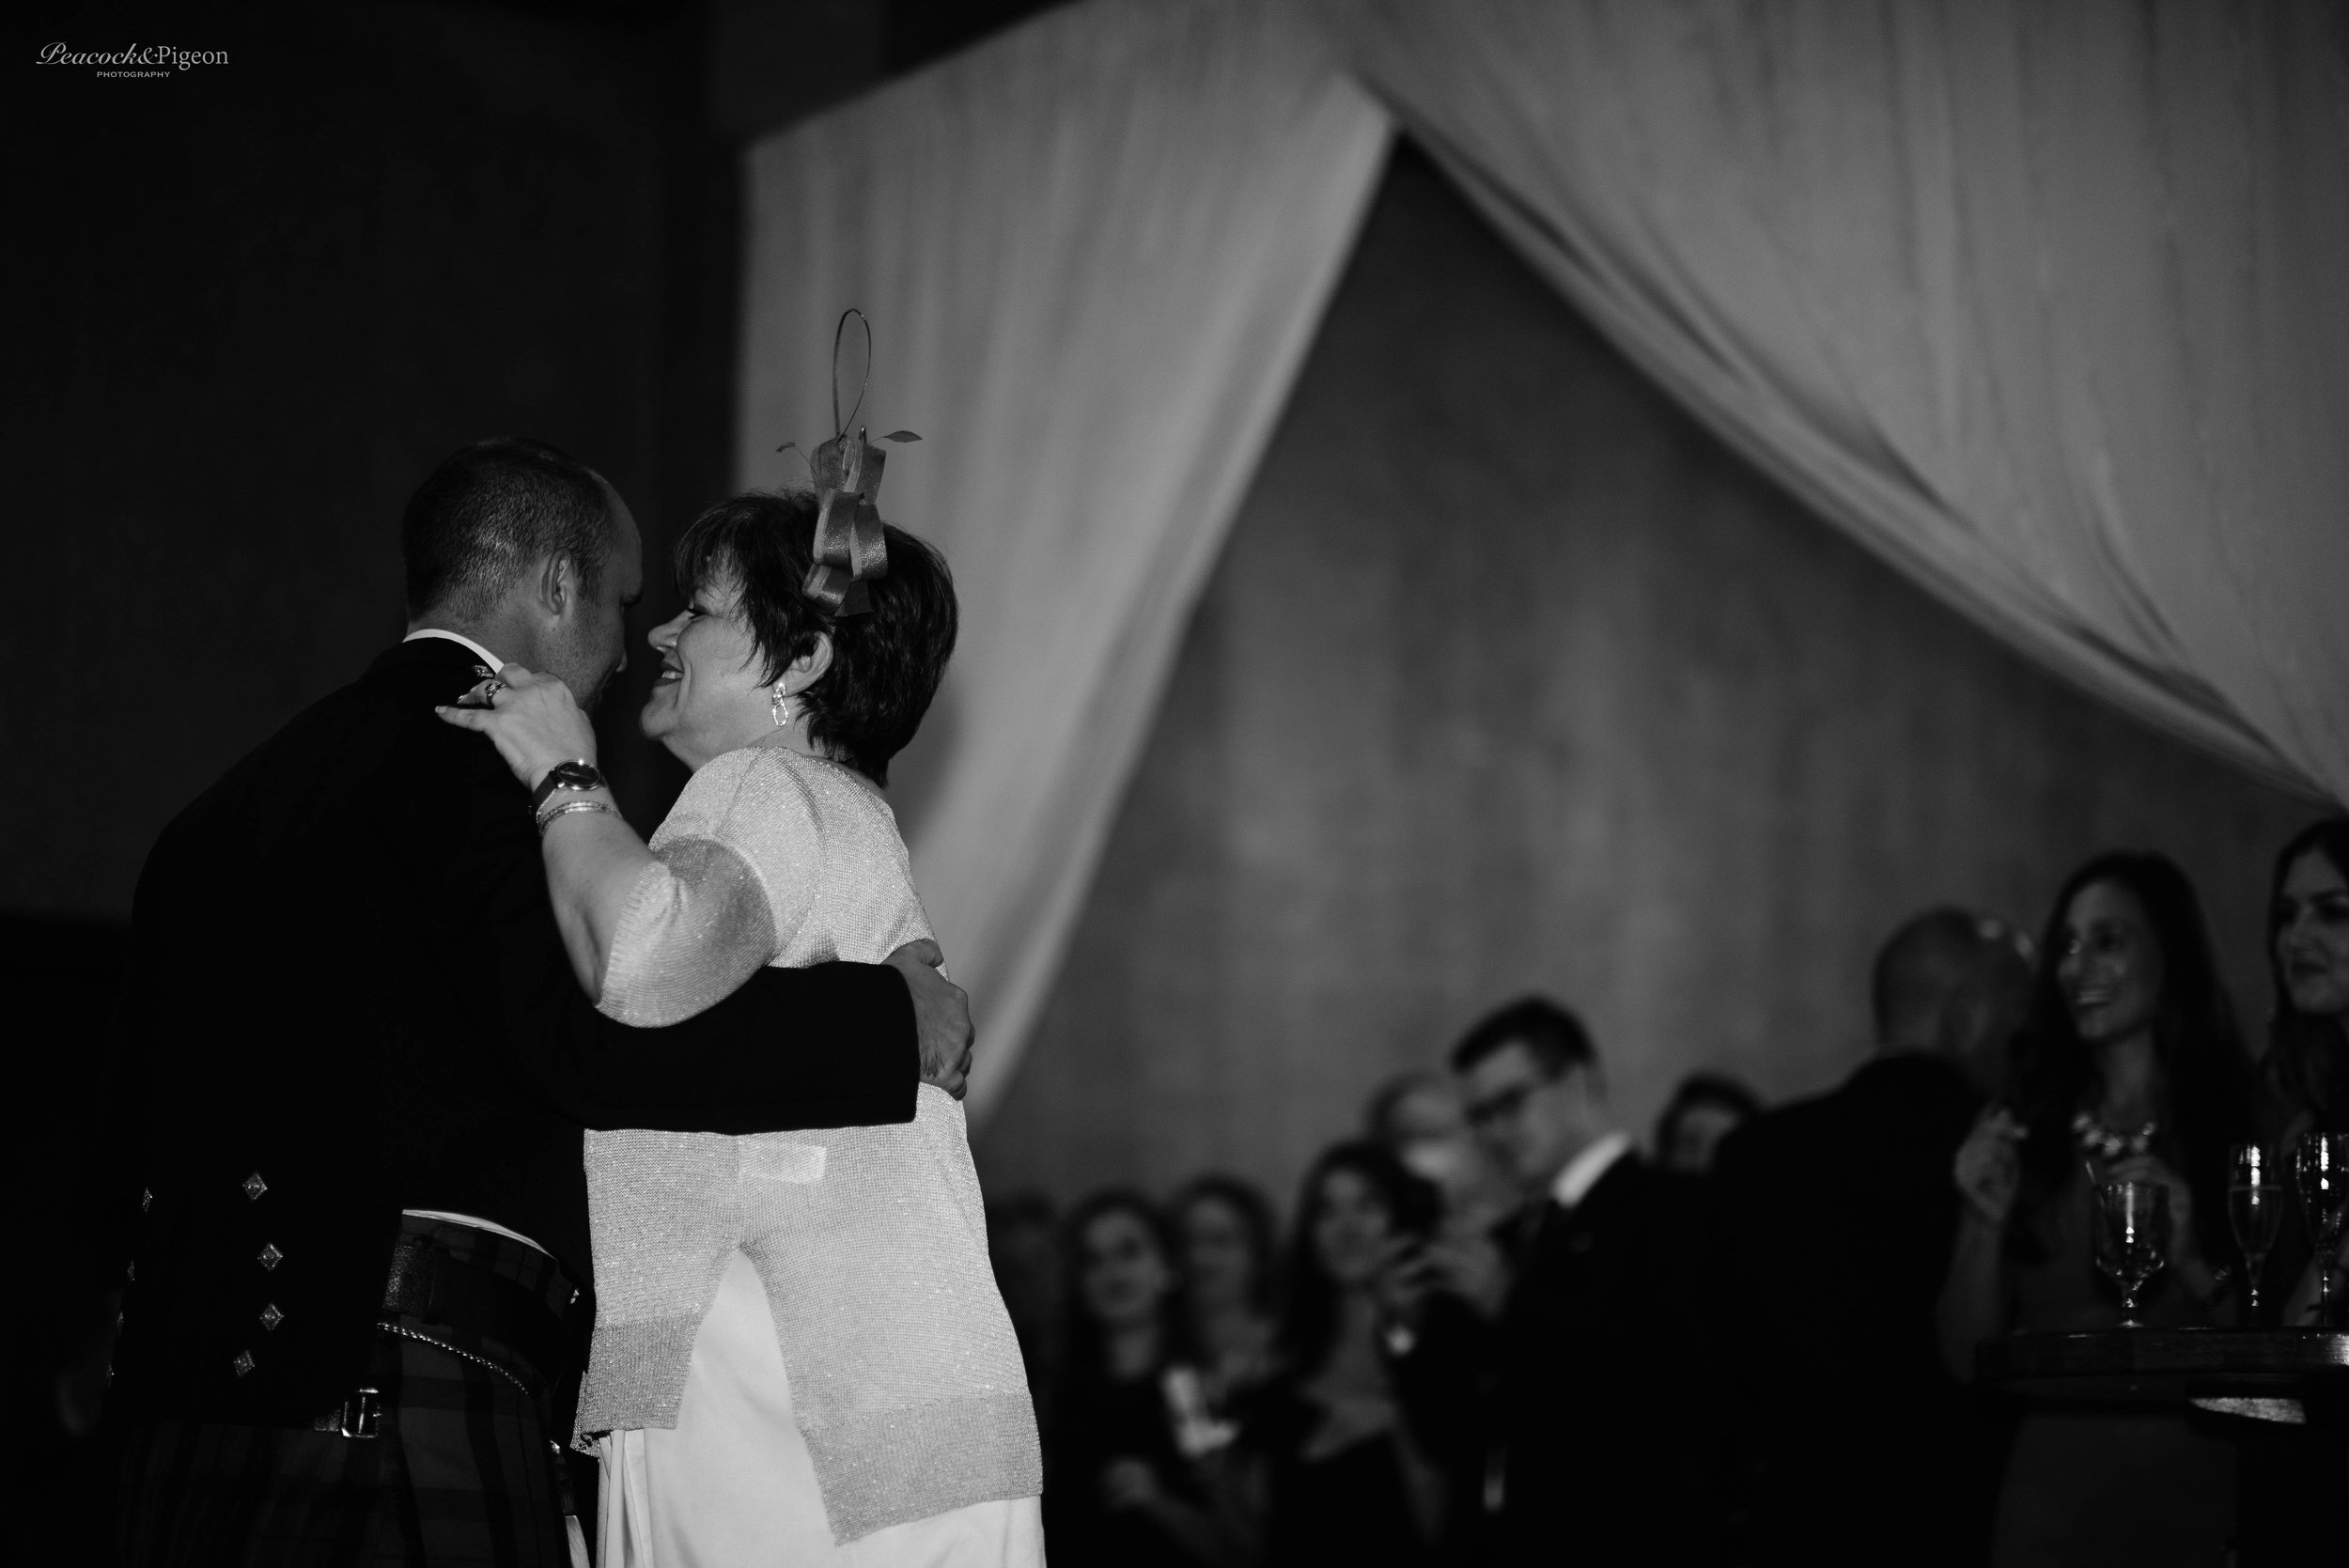 Callum_and_Sara's_Wedding_at_the_Cork_Factory_Hotel_in_Lancaster-Part_Seven_First_Dances_Black_and_White_Watermarked-51.jpg